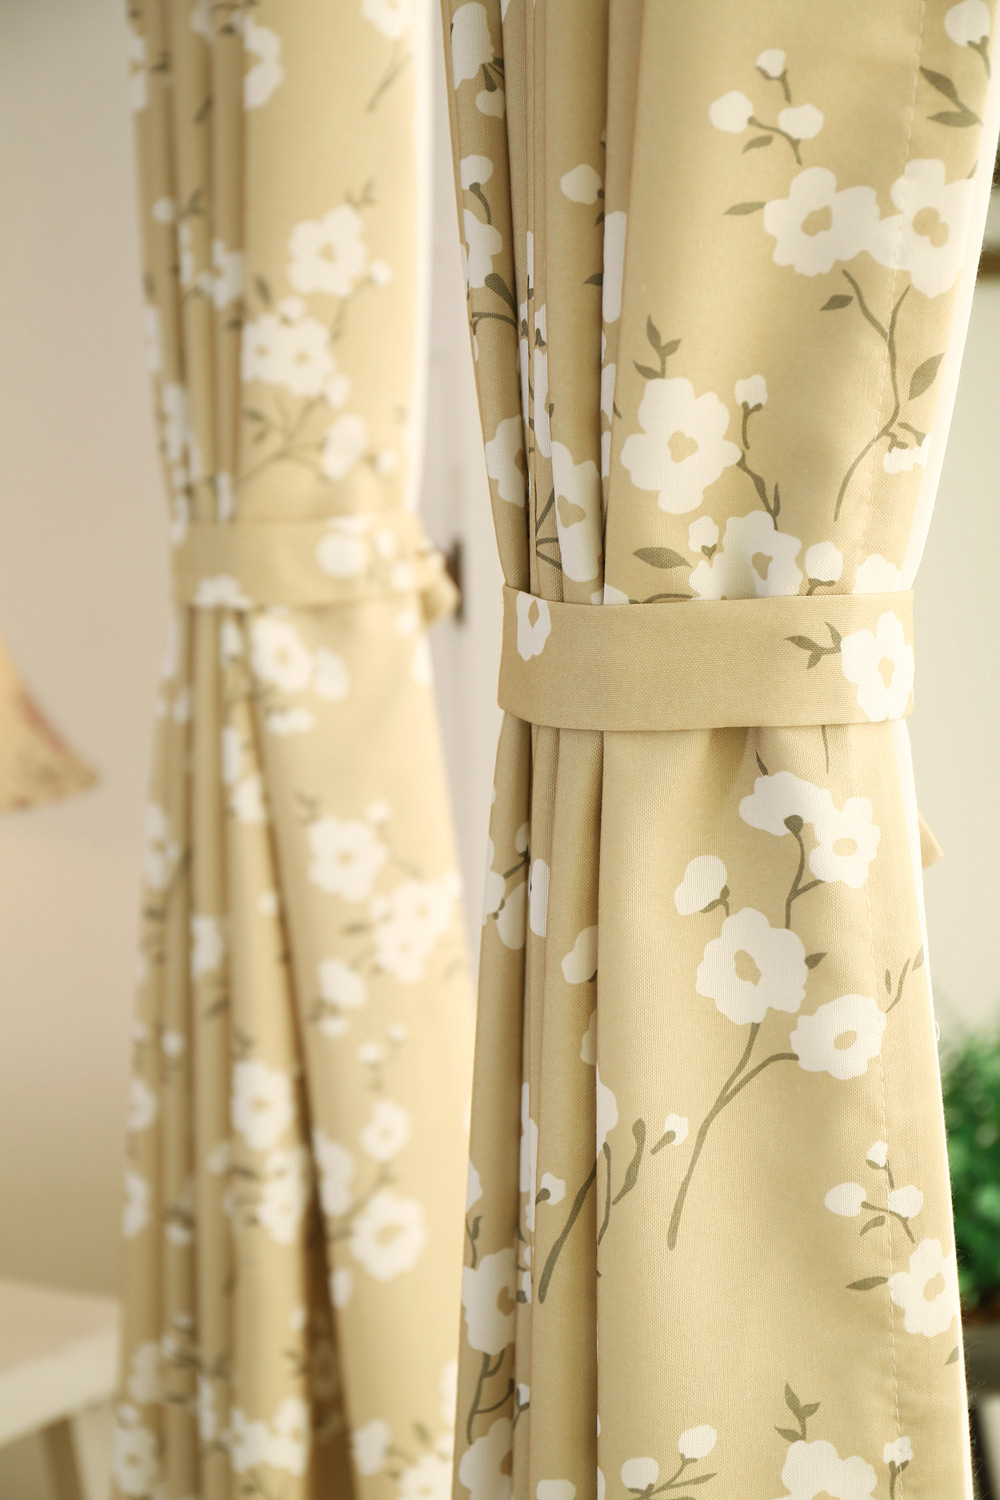 Curtain Fabric Wholesale Us 13 9 High Grade New Green Embroidered Cotton Curtain Fabric Wholesale Explosion Models Blacony Window Curtains Fabrics Luxury In Curtains From